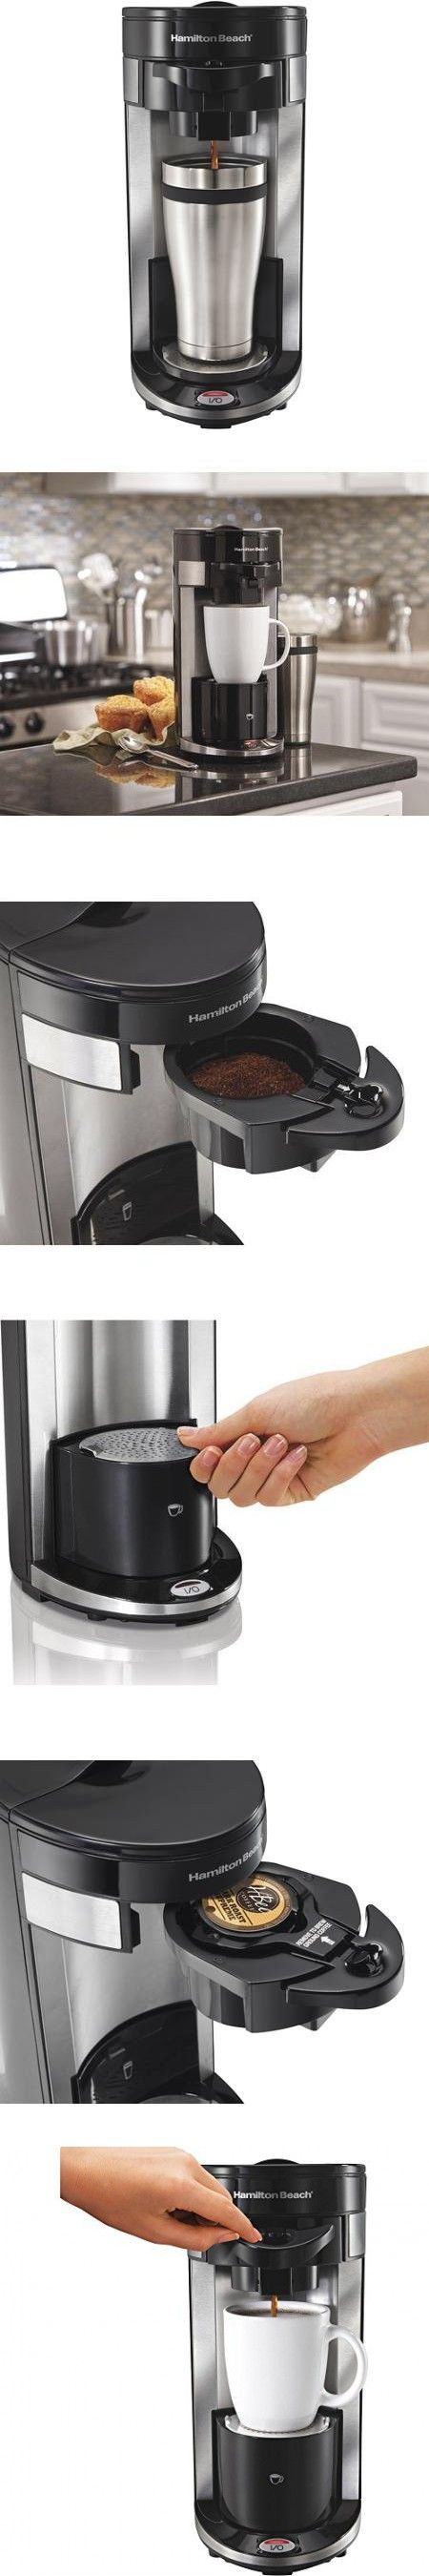 Flex Brew Single-Serve Coffee Maker, Black